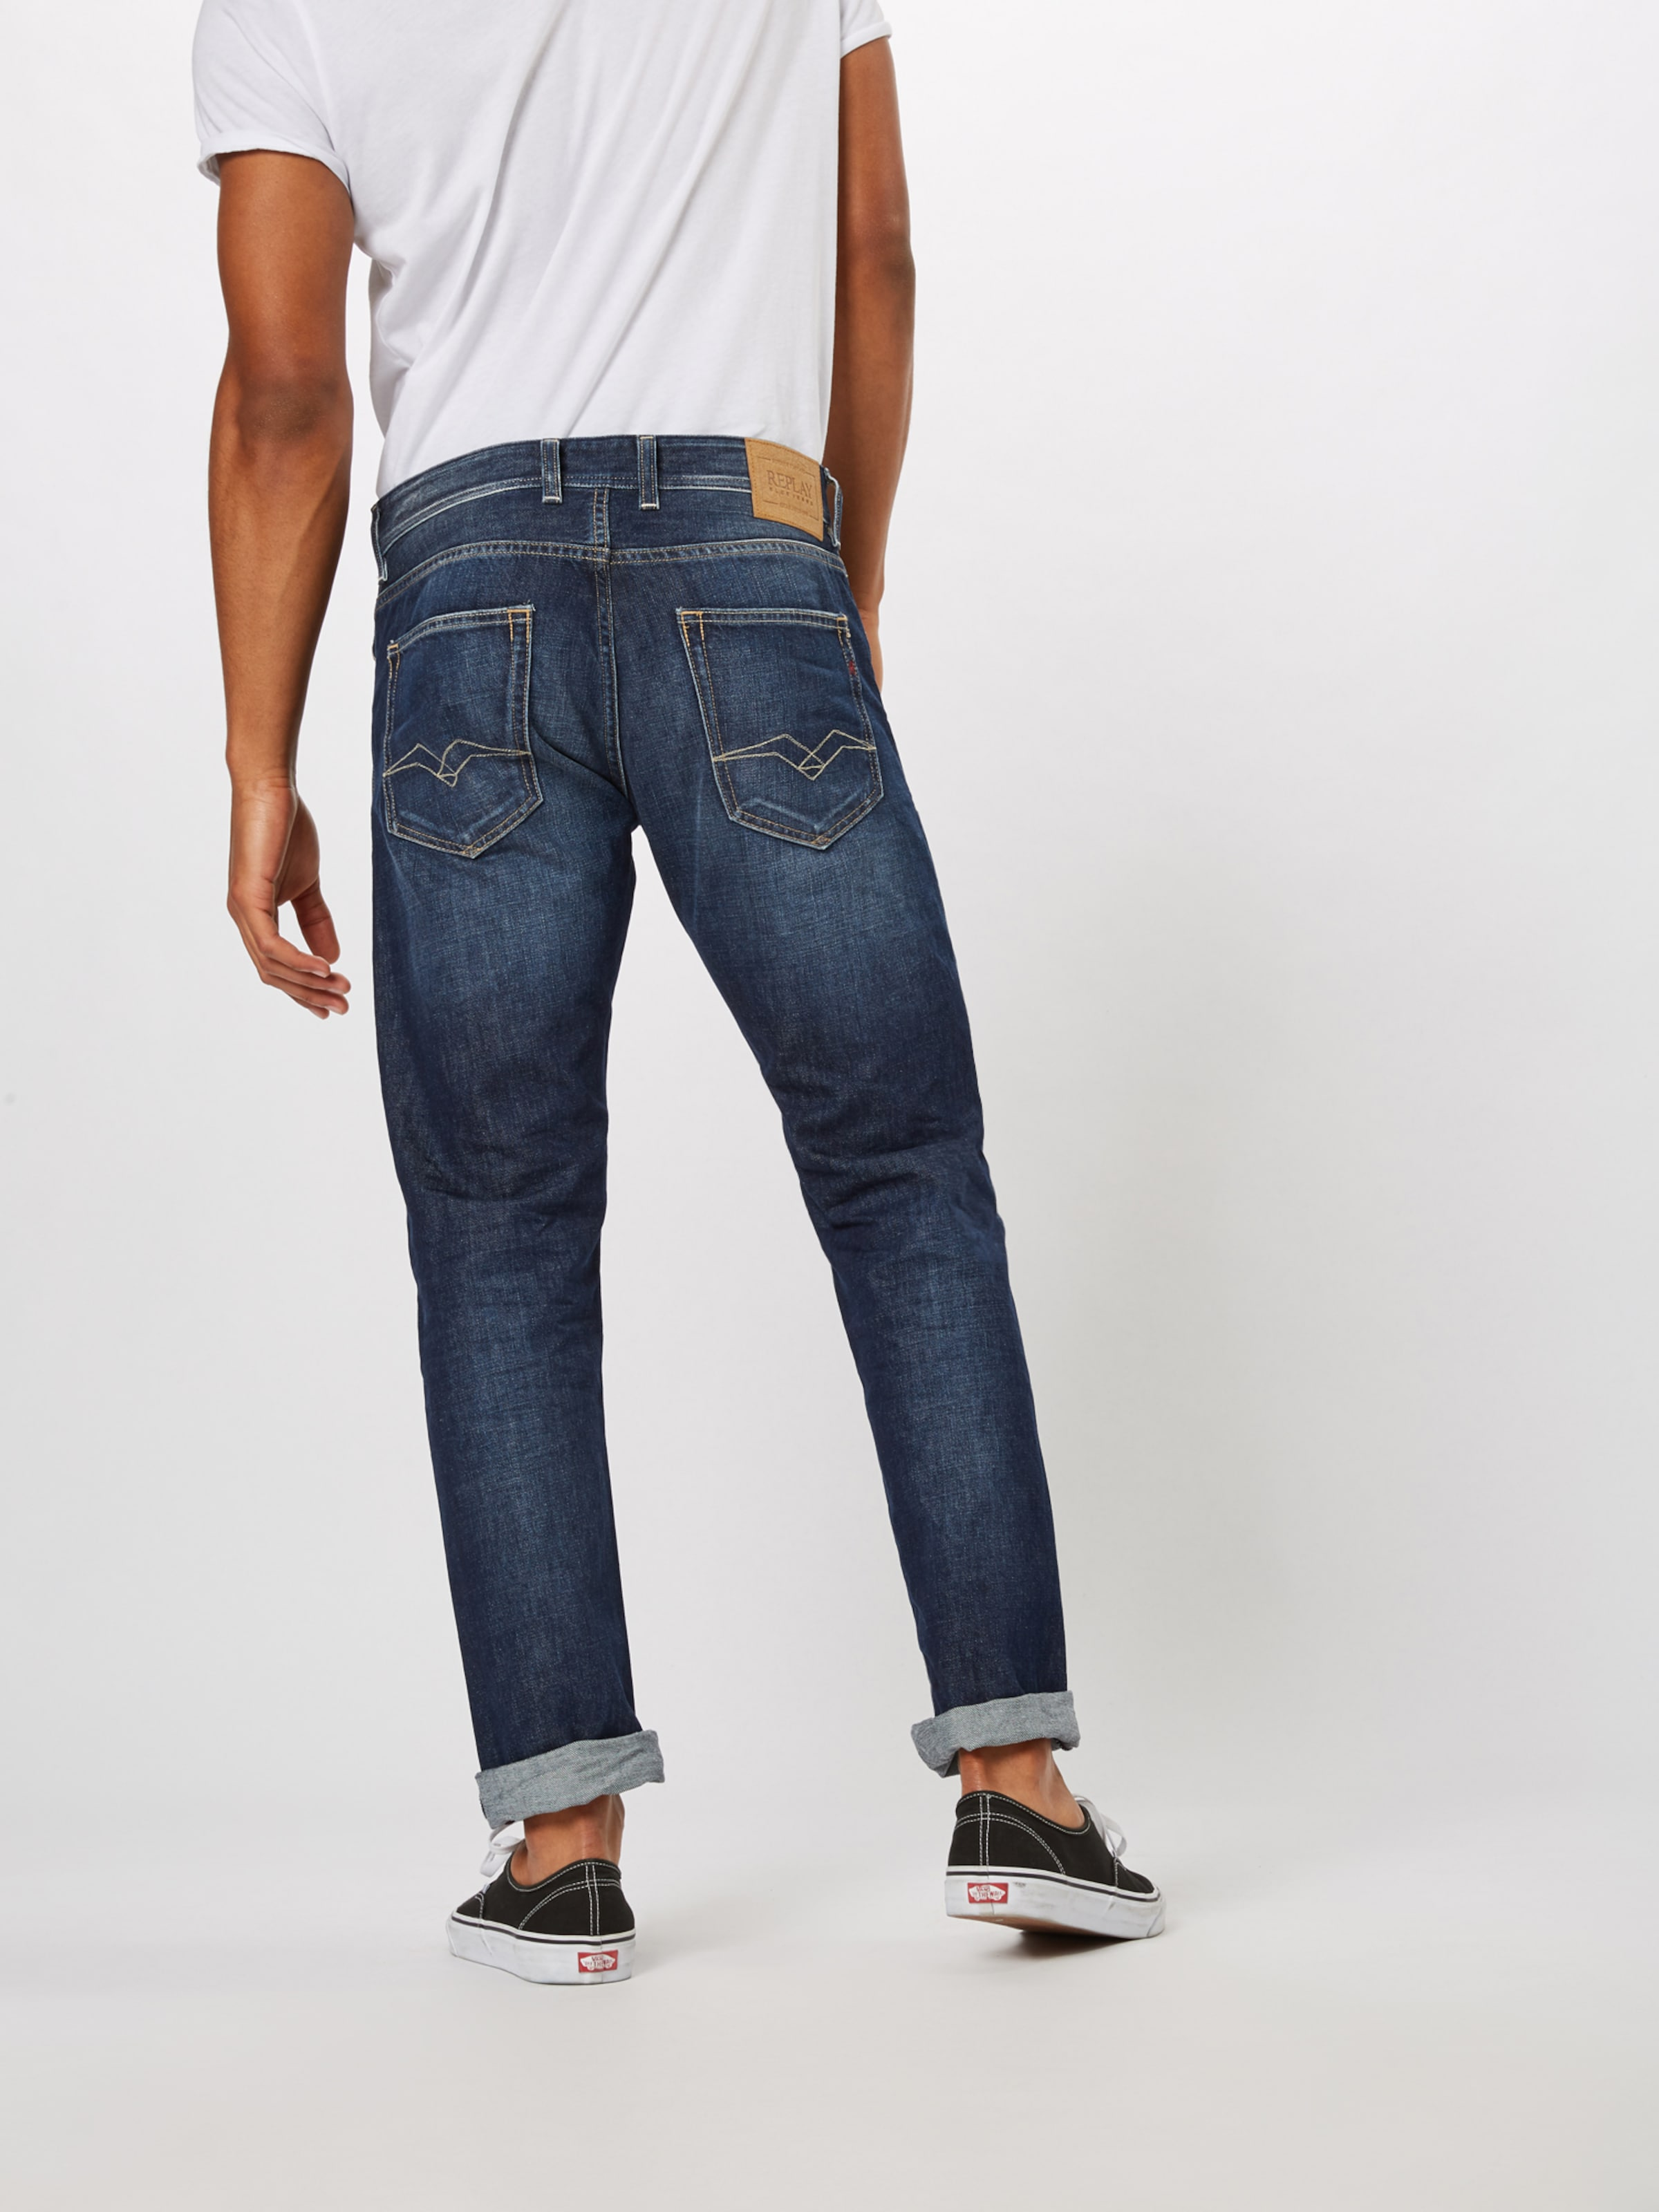 Replay 'grover' Denim In Blue Jeans tCxsdhQr